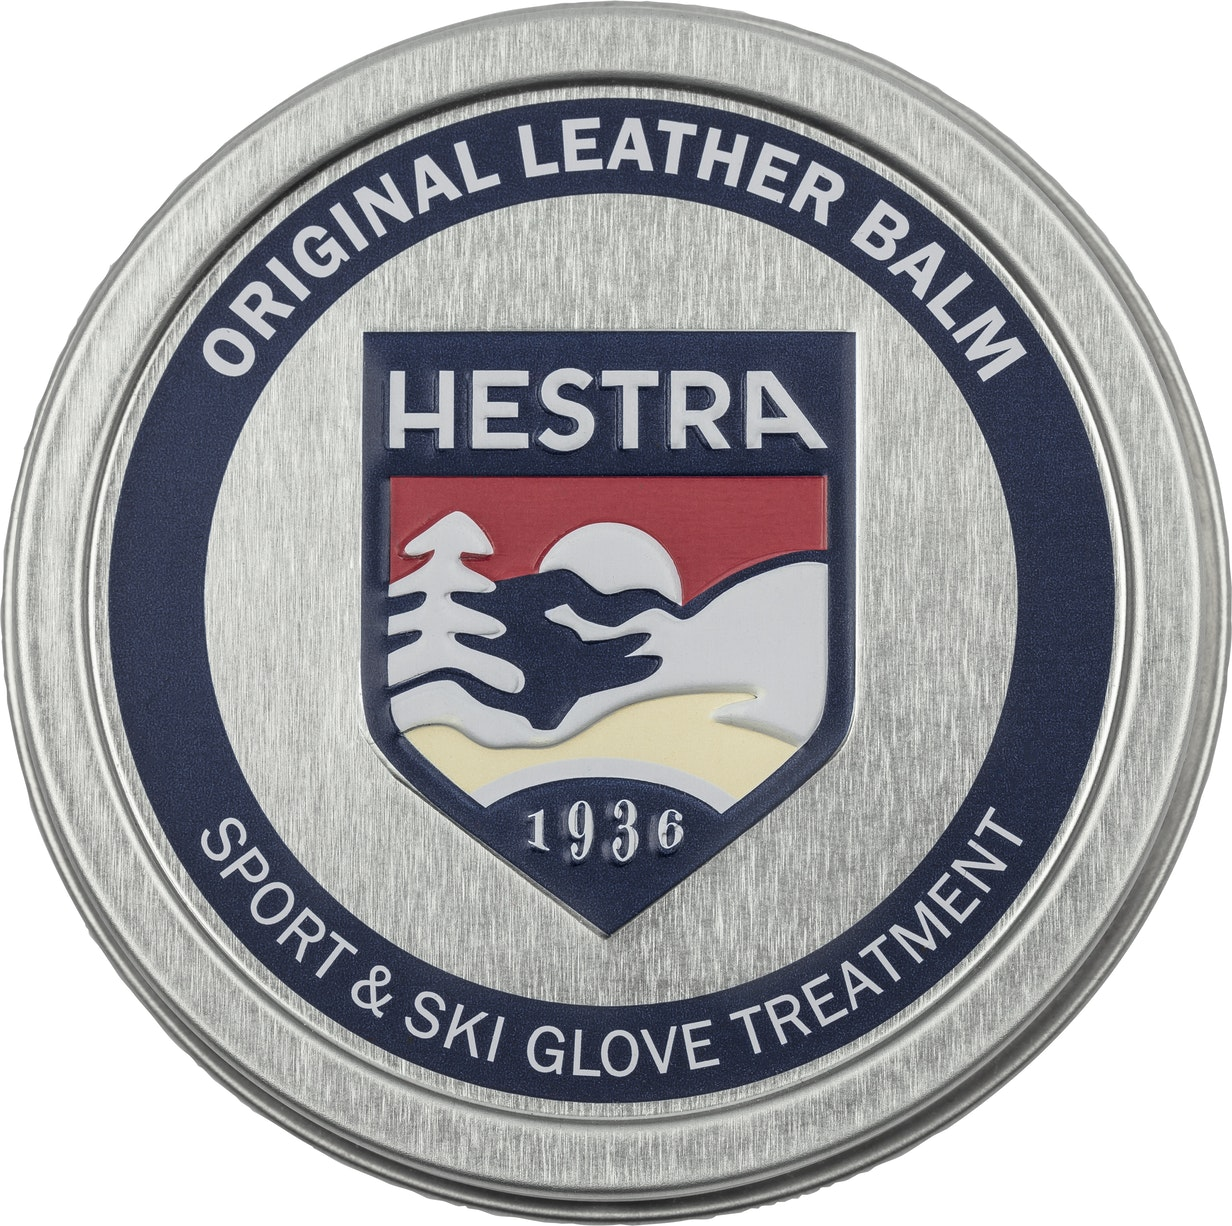 Product image for 91700 Hestra Leather Balm